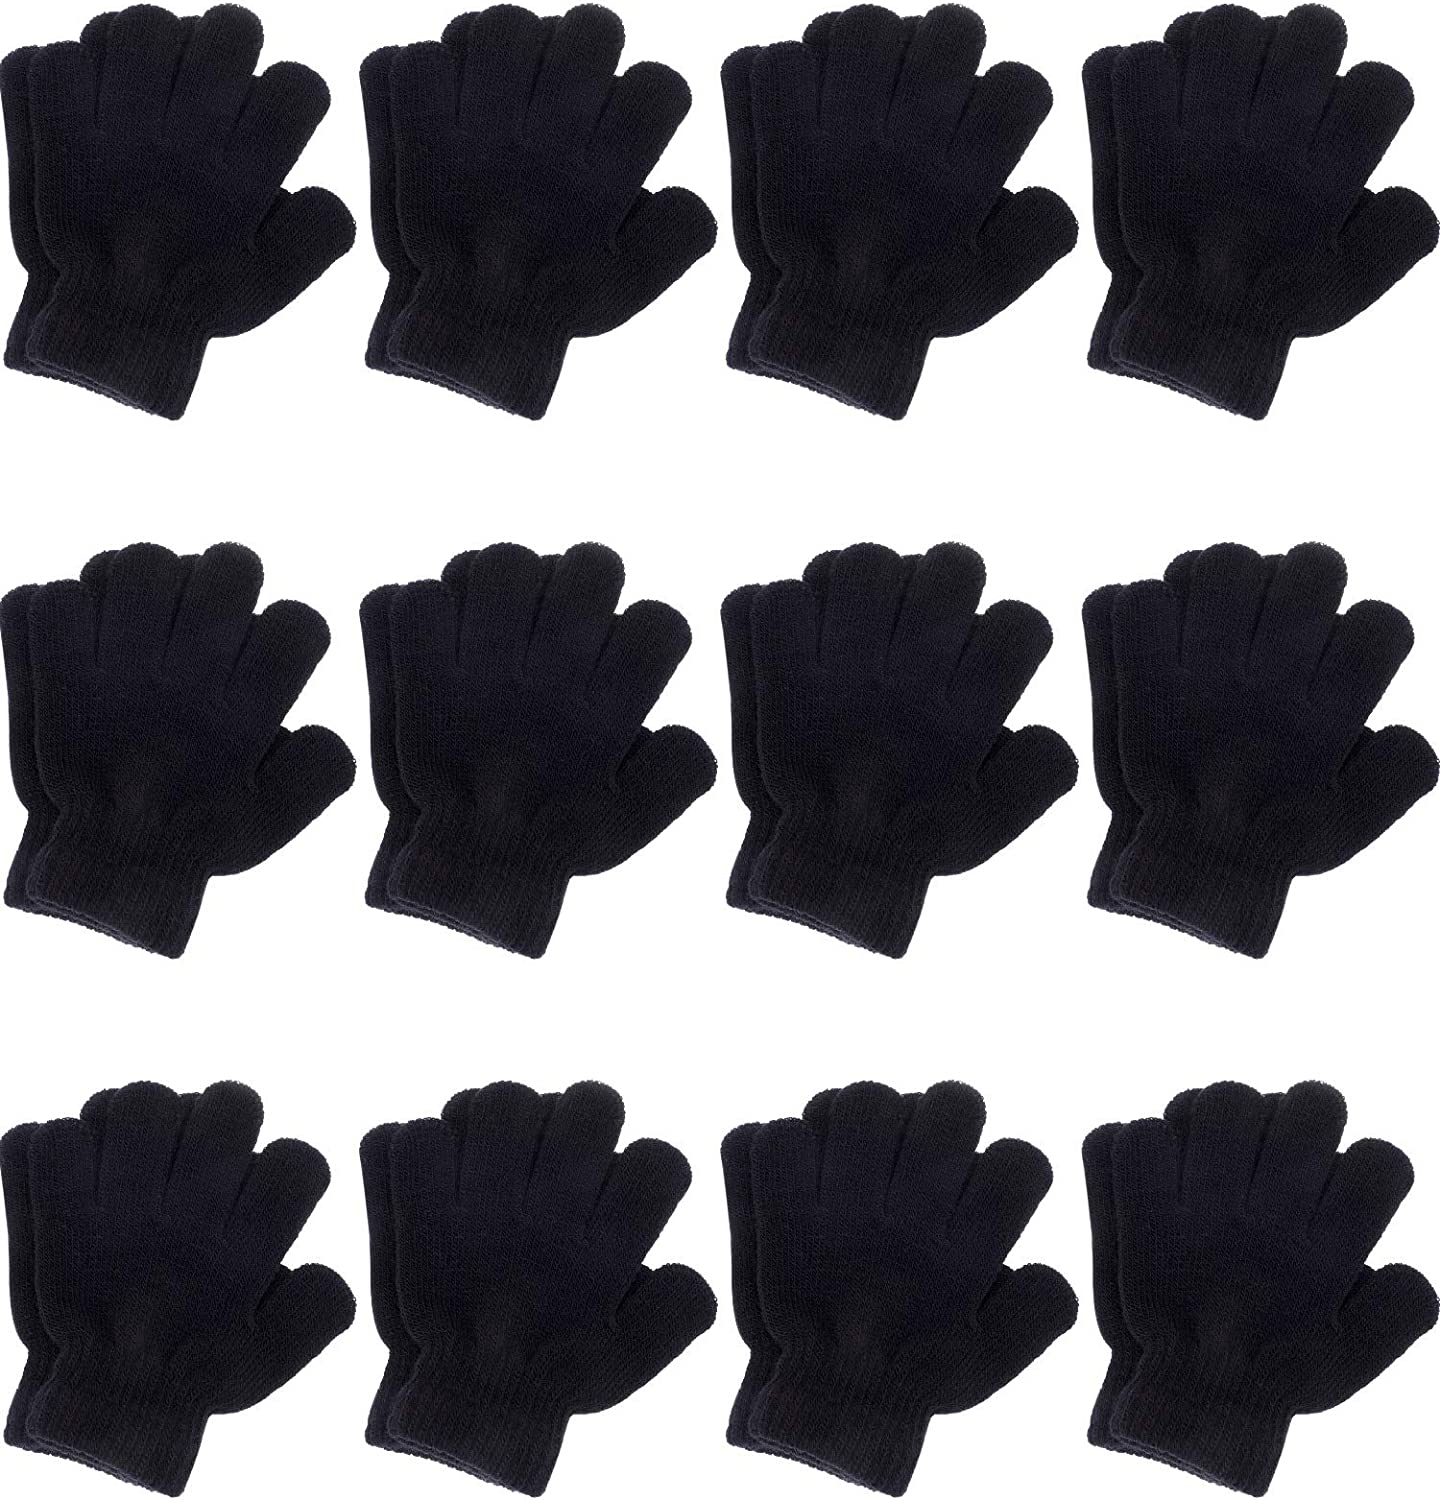 KIDS WINTER GLOVES 12 PAIRS